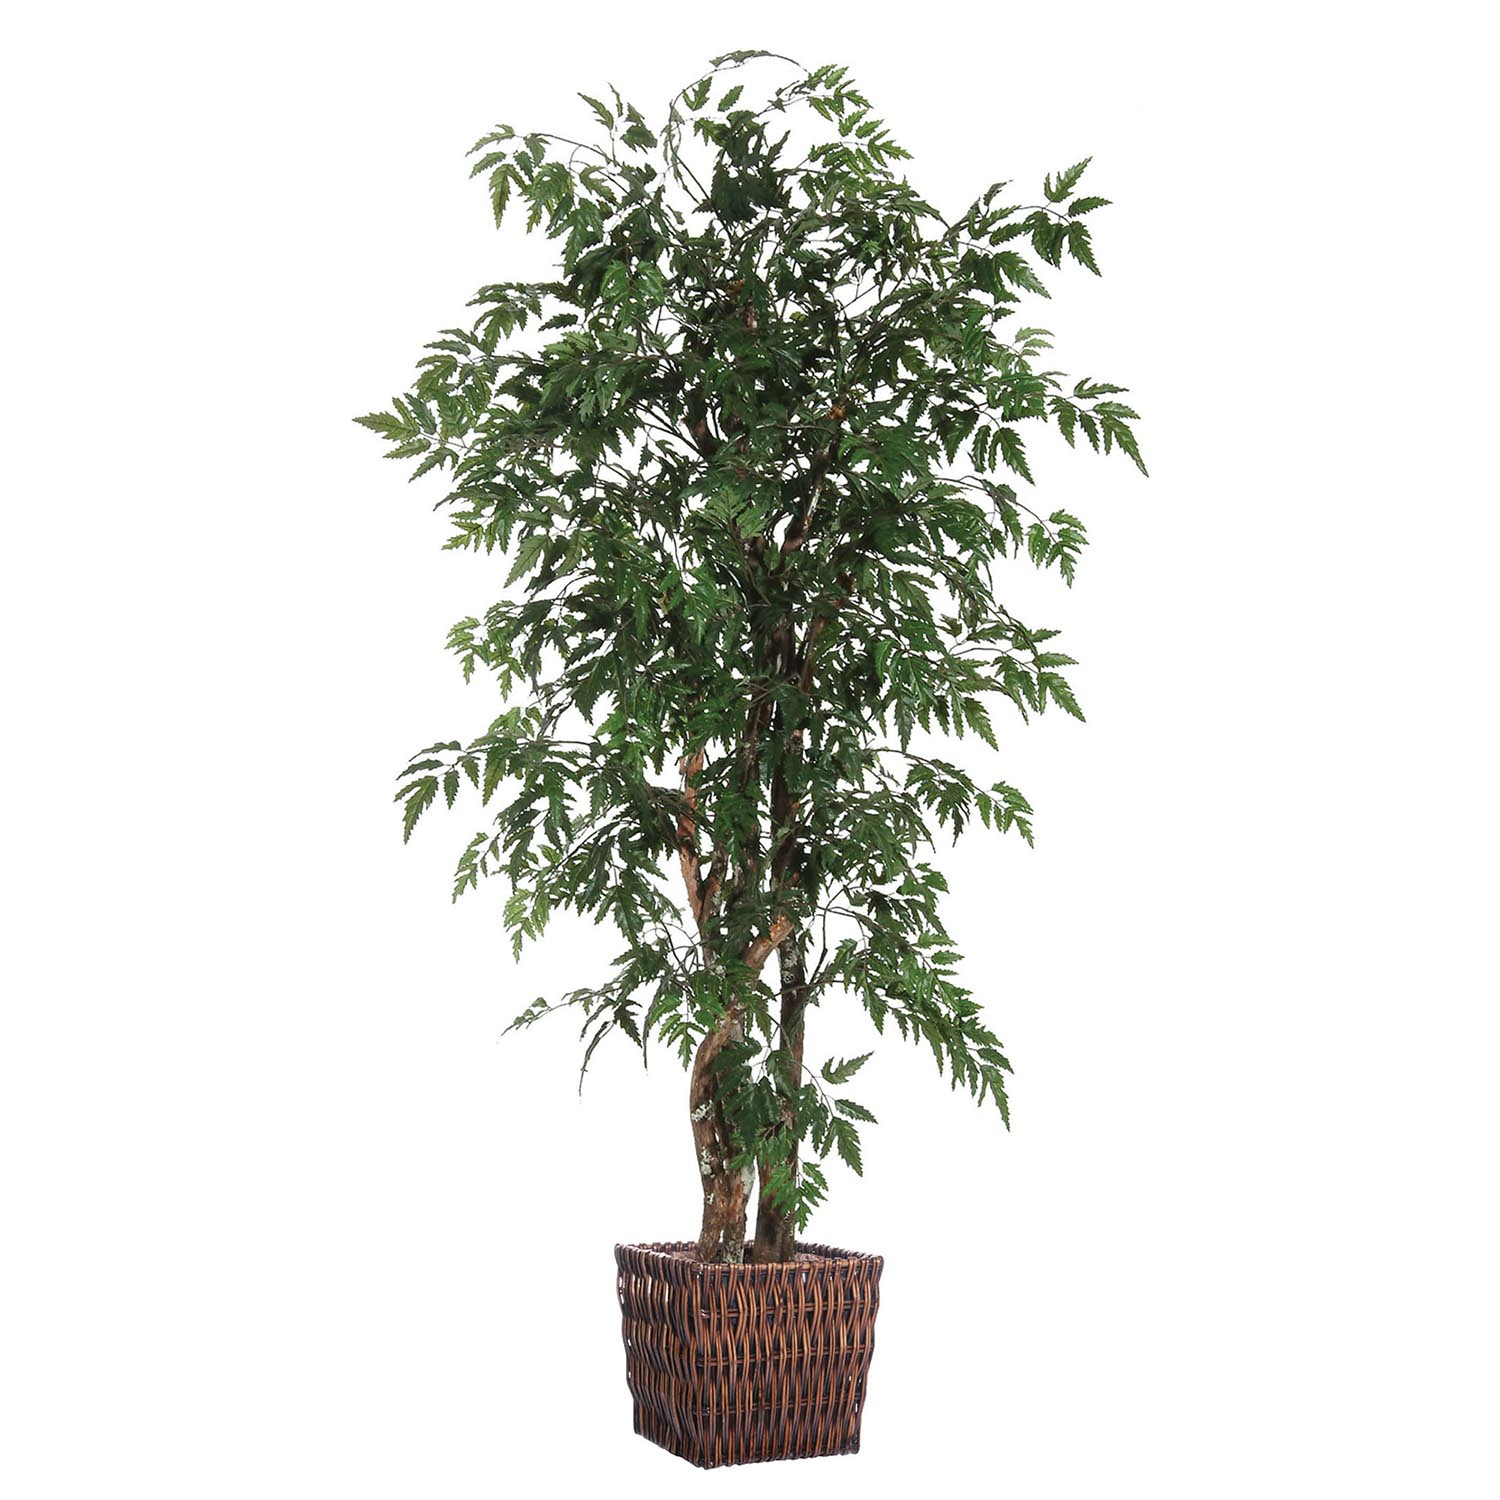 6 Foot Ming Executive Tree W/ Natural Trunk In Willow Basket